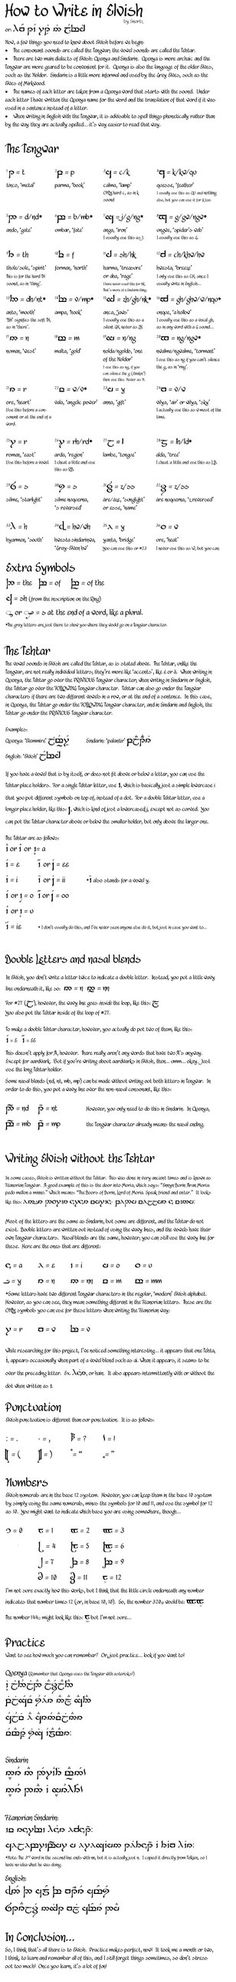 TUTORIAL: How to write Elvish by =snurtz on deviantART - We should make little name things and write notes and PASL documents in Elvish.